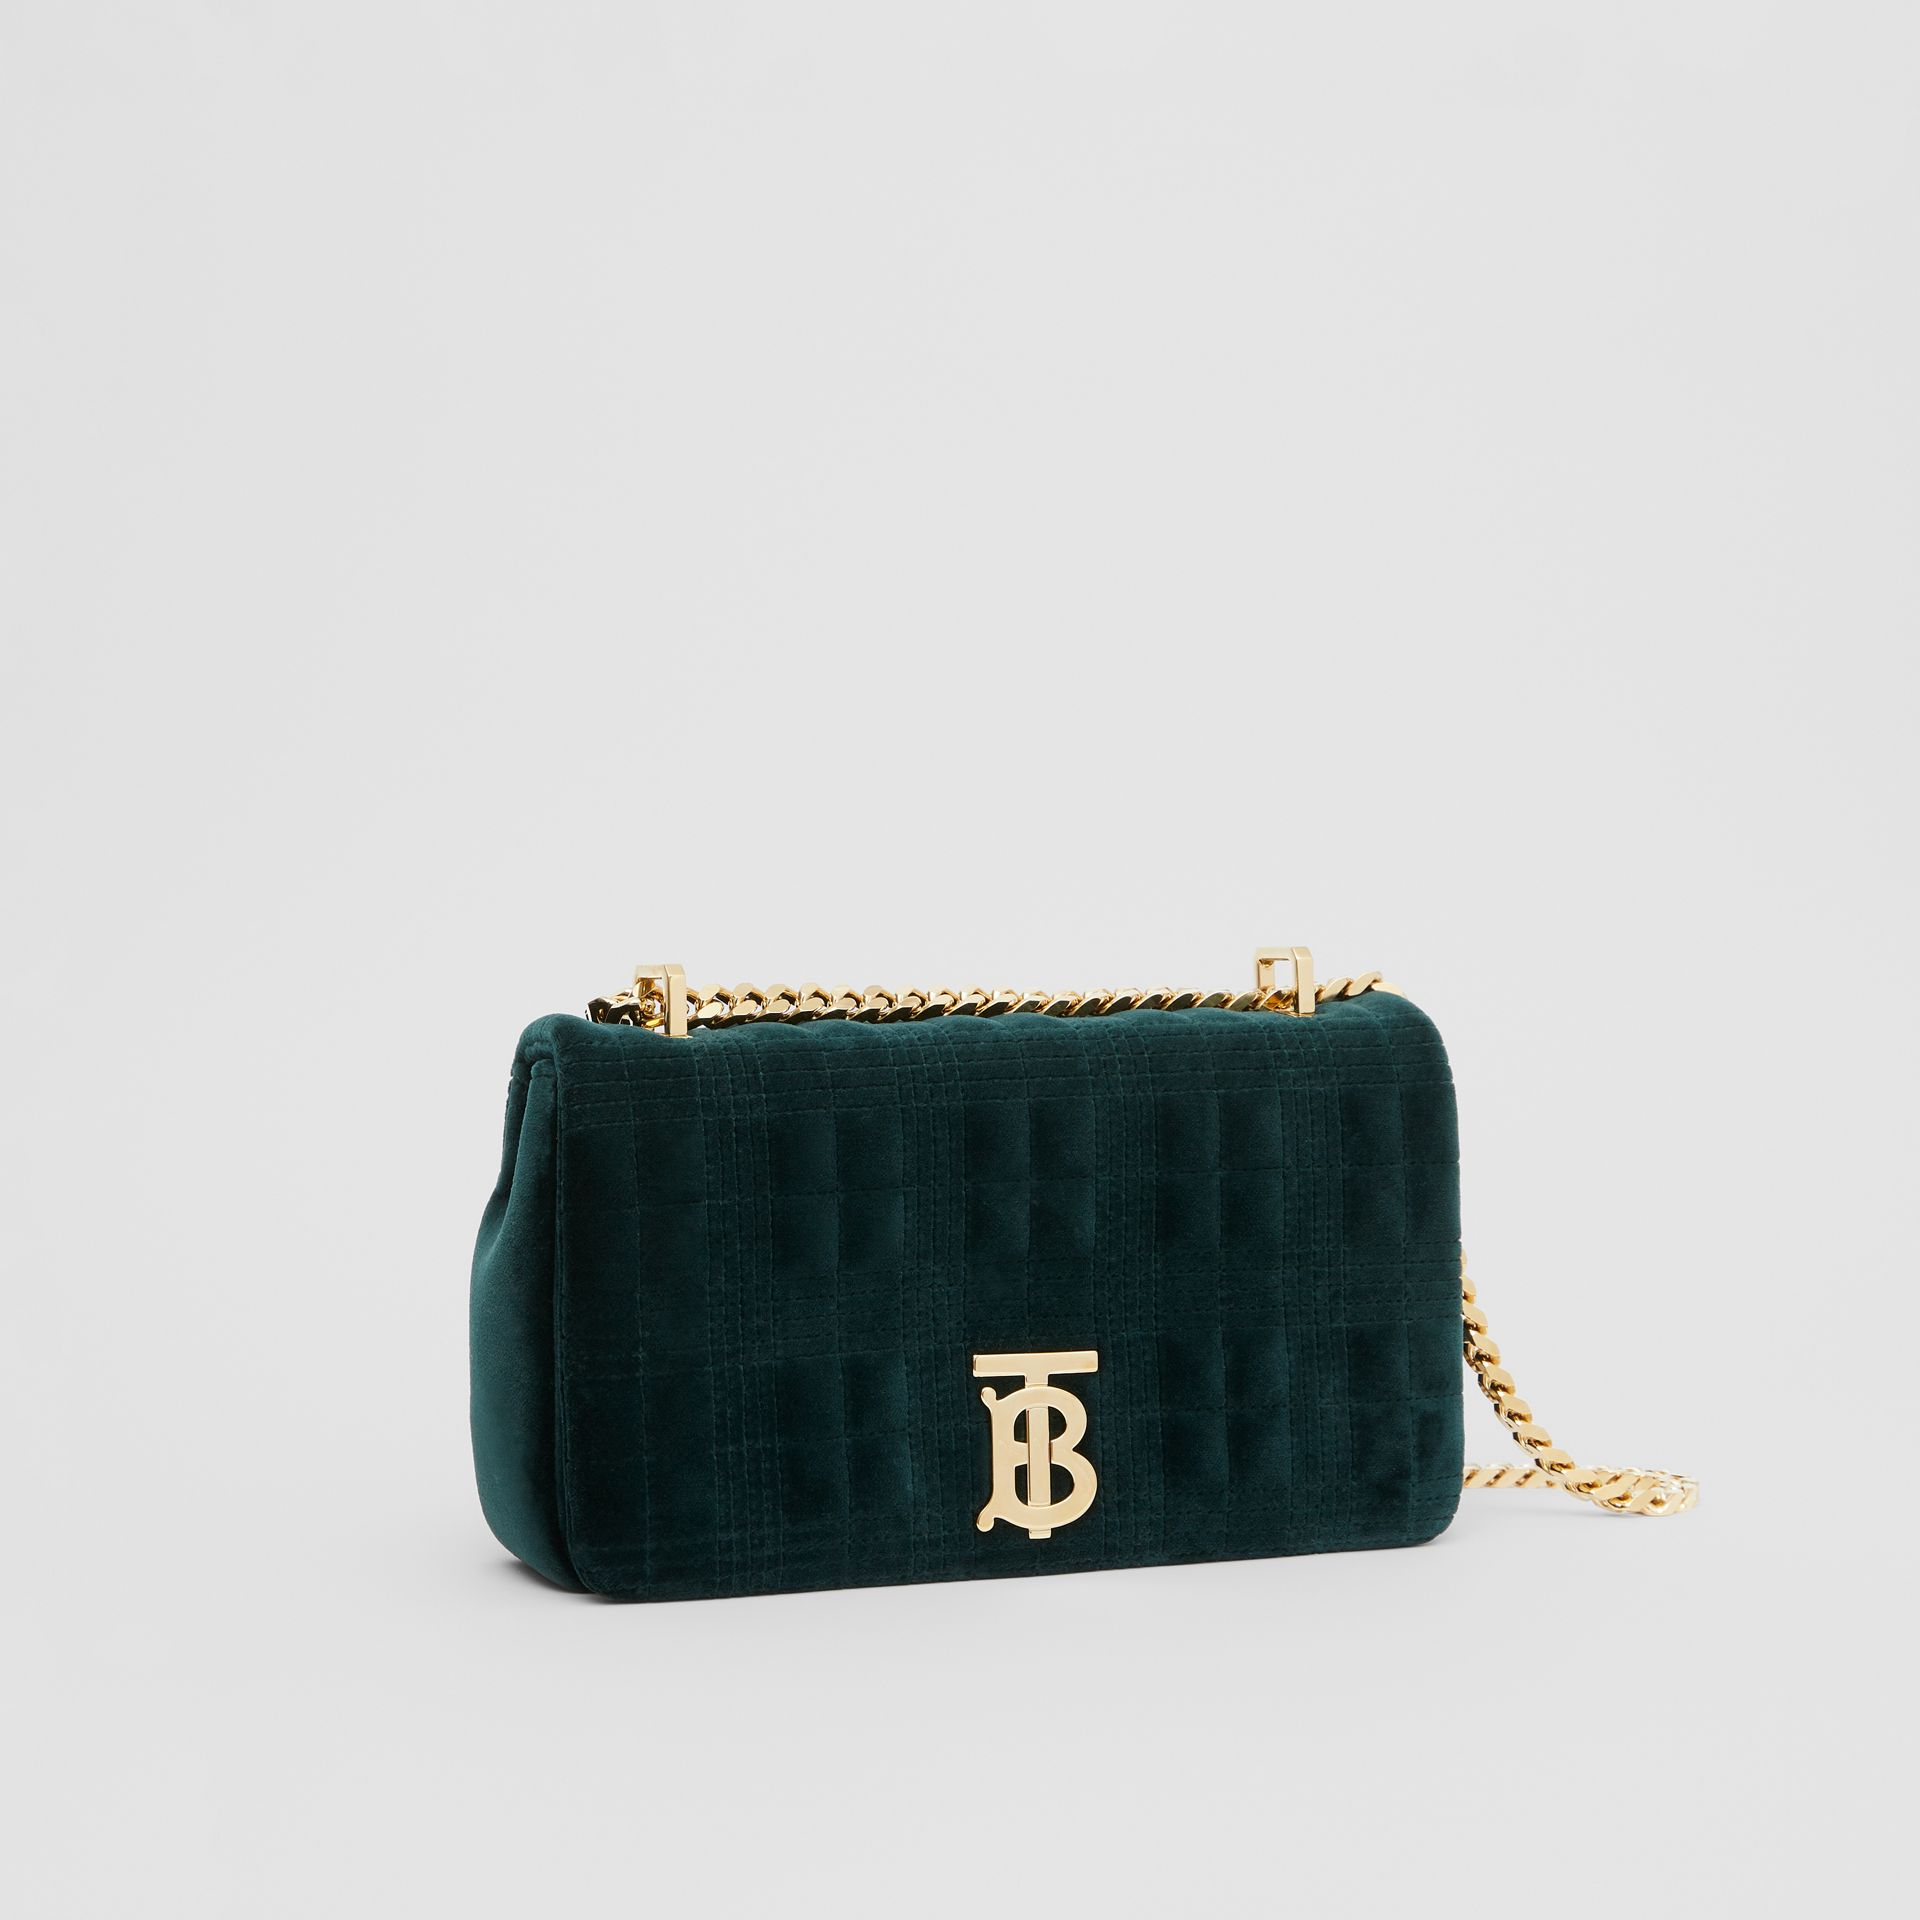 Small Quilted Velvet Lola Bag in Dark Green - Women | Burberry Australia - gallery image 6